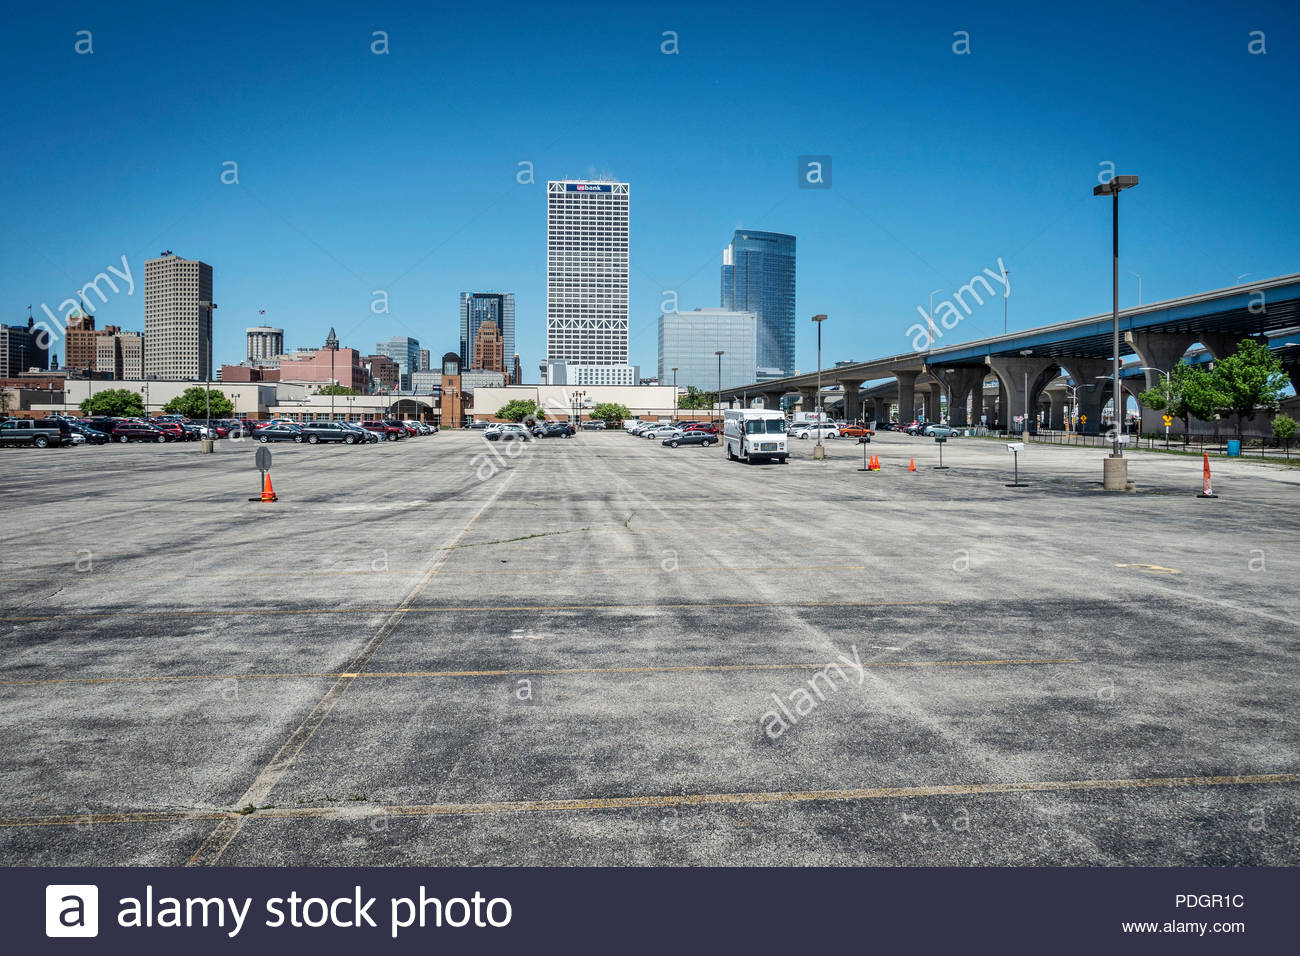 Parkplatz in Milwaukee - Stock Image